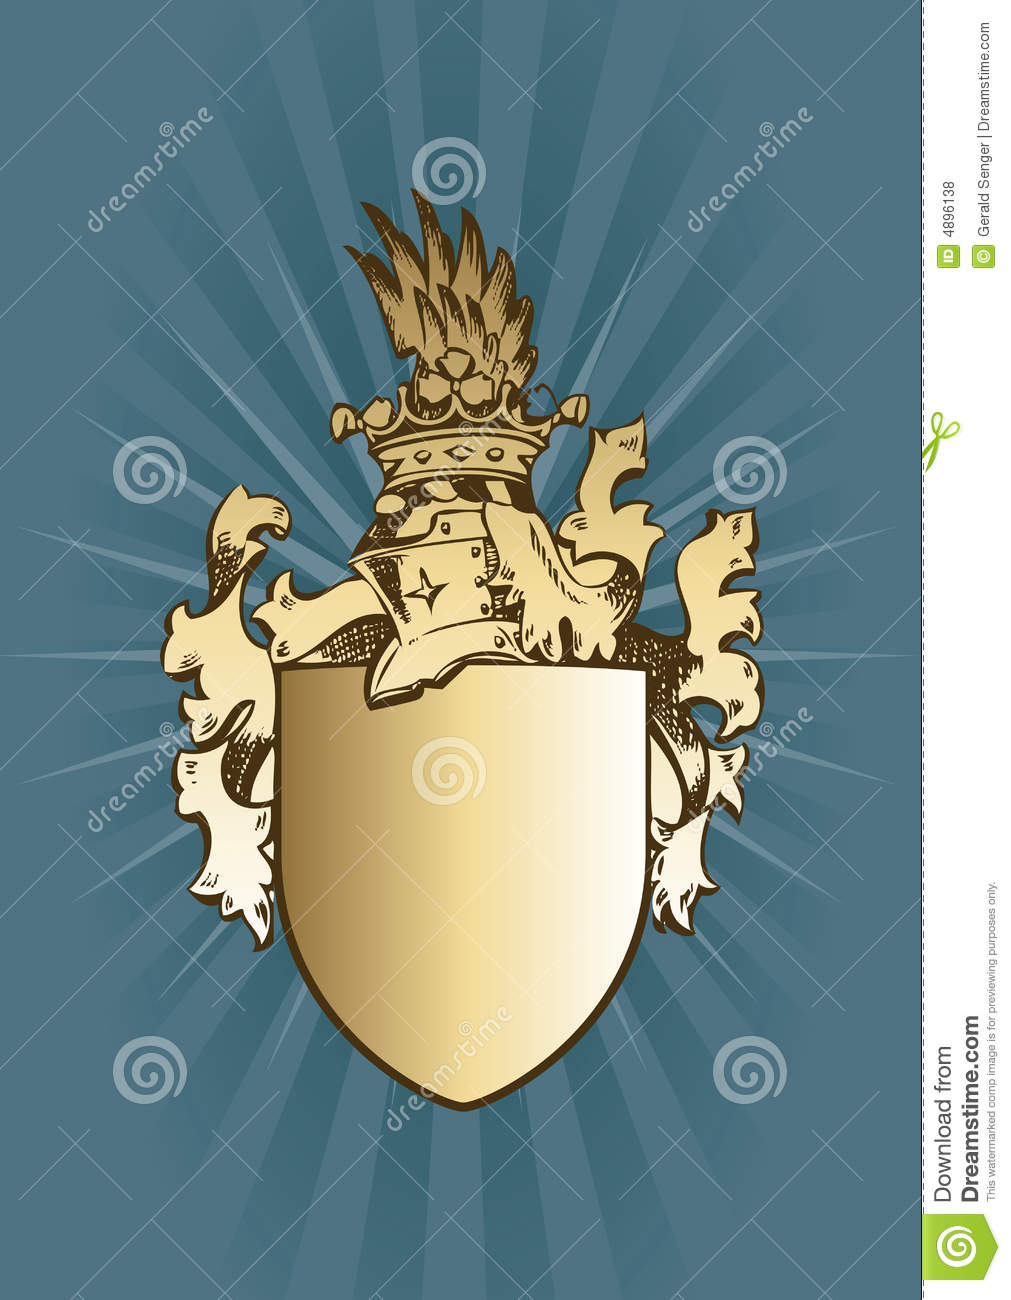 knight coat of arms royalty free stock photos